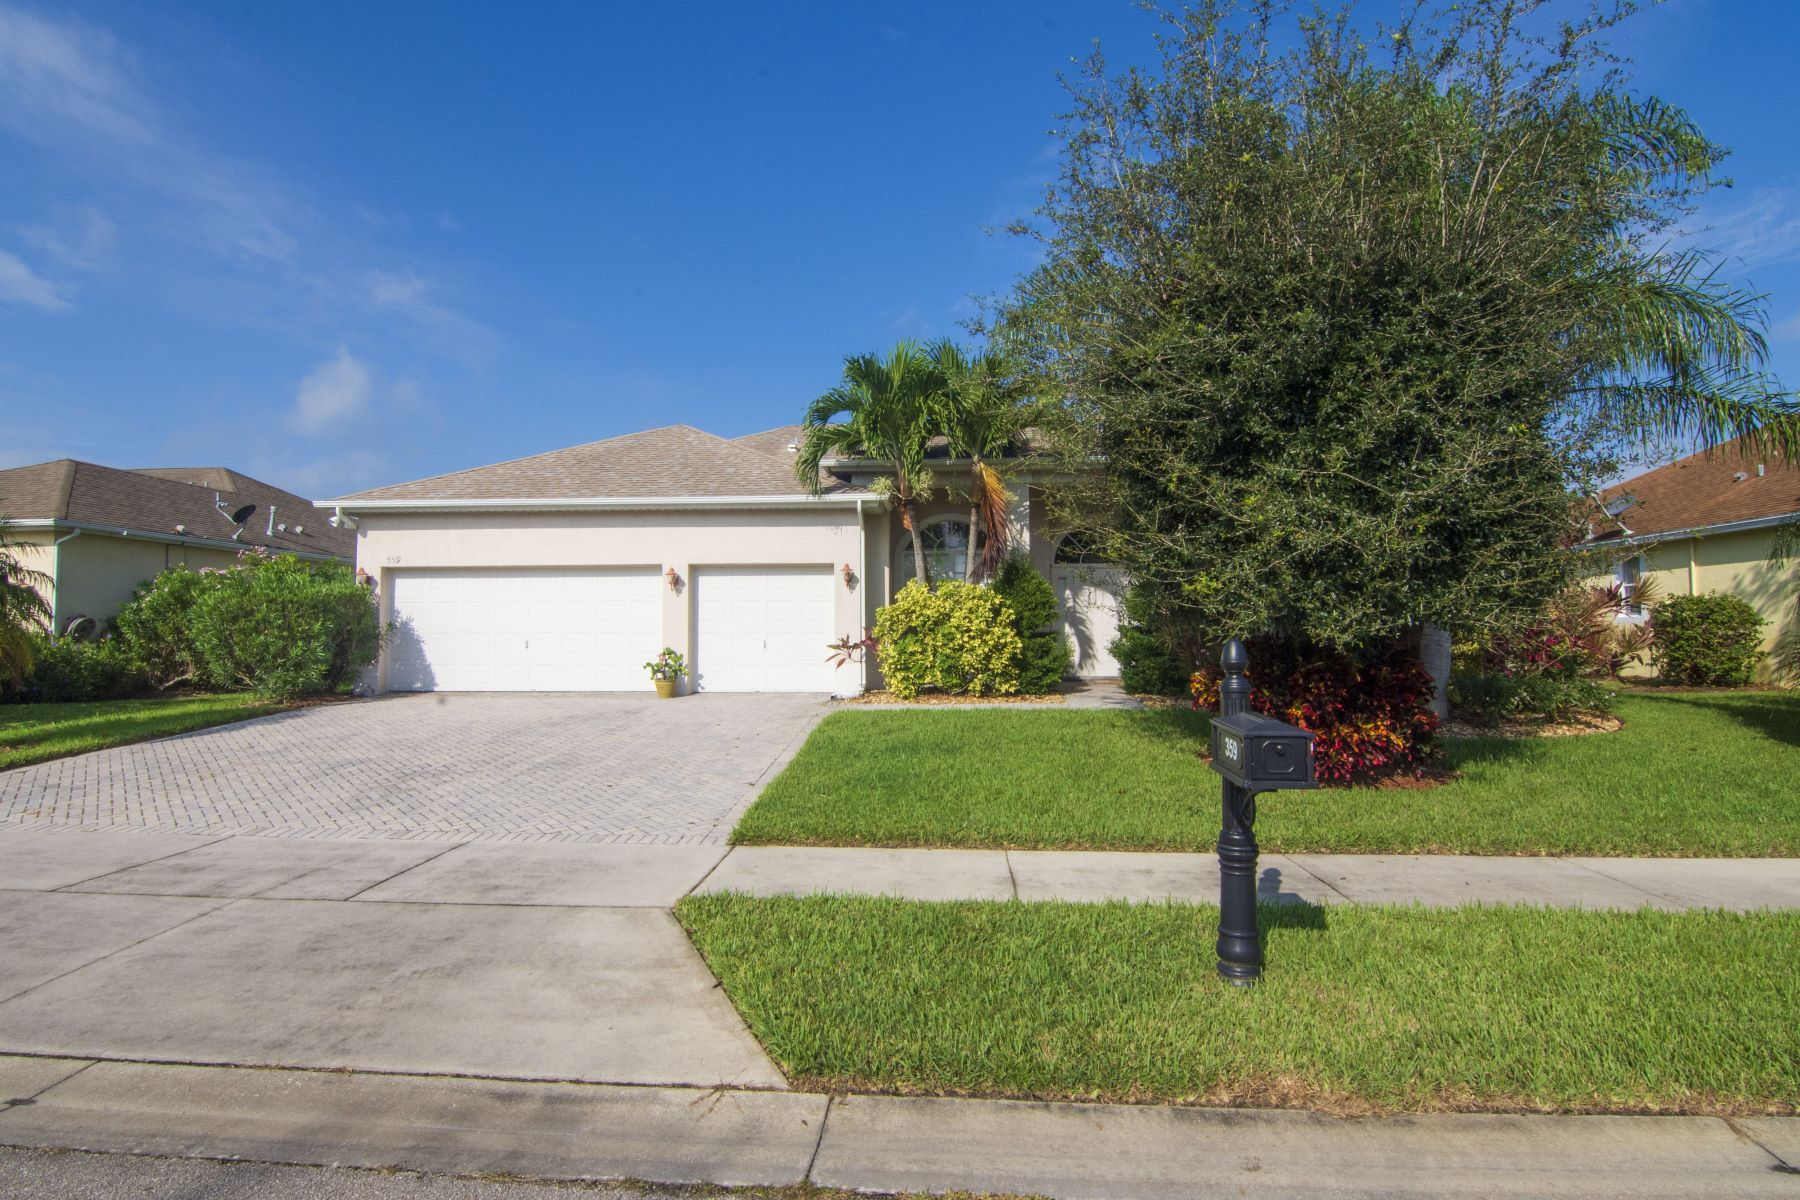 Single Family Homes for Sale at 359 W Key Lime Square Sw, Vero Beach, FL 359 W Key Lime Square Sw Vero Beach, Florida 32968 United States